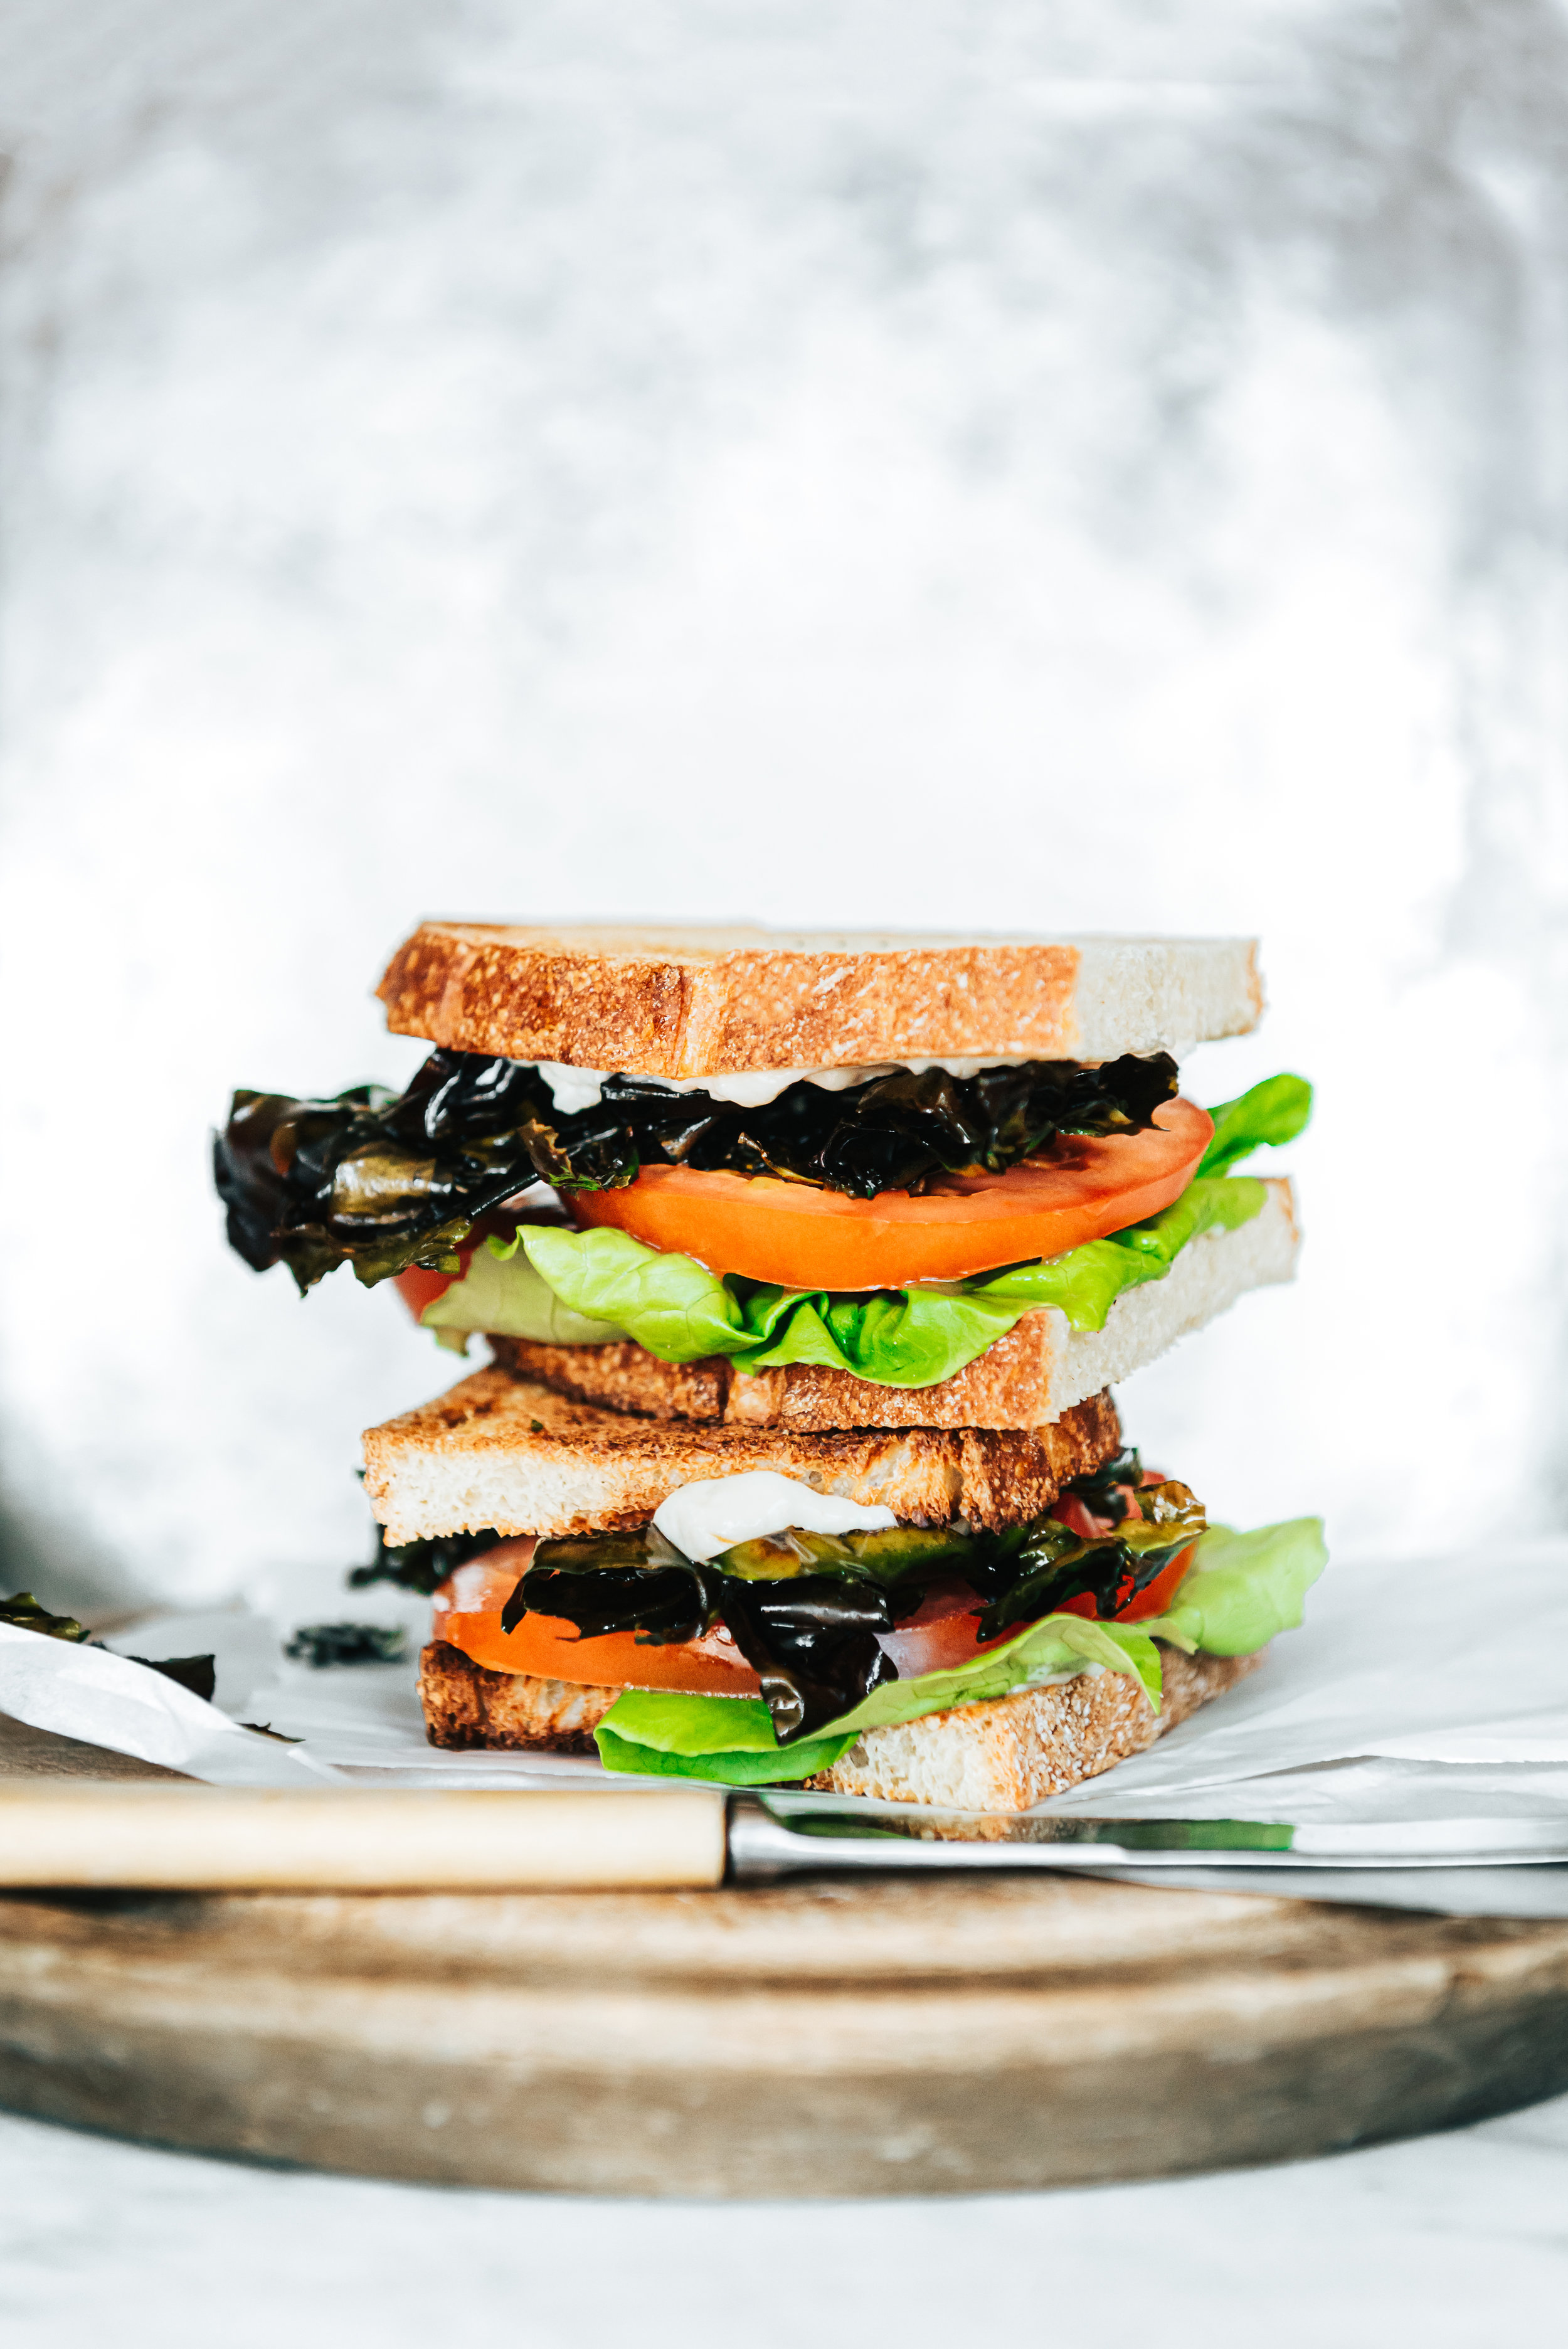 Classic B.L.T. (D.L.T.) - Have a craving for the classic B.L.T.? Try a D.L.T. instead!In this recipe substitute the bacon out for dulse leaves fried in oil until green and add it to any sandwich you'd put some bacon in!Ingredients:- Fry dulse leaves in a frying pan with some oil until a deep, rich green colour- Toast 2-3 pieces of rustic bread- Slice tomatoes to personal preference- Wash lettuce and tear to desired size- Spread mayonnaise on toast and layer other items to create a D.L.T.Optional: add chicken to make a seaside inspired chicken club!